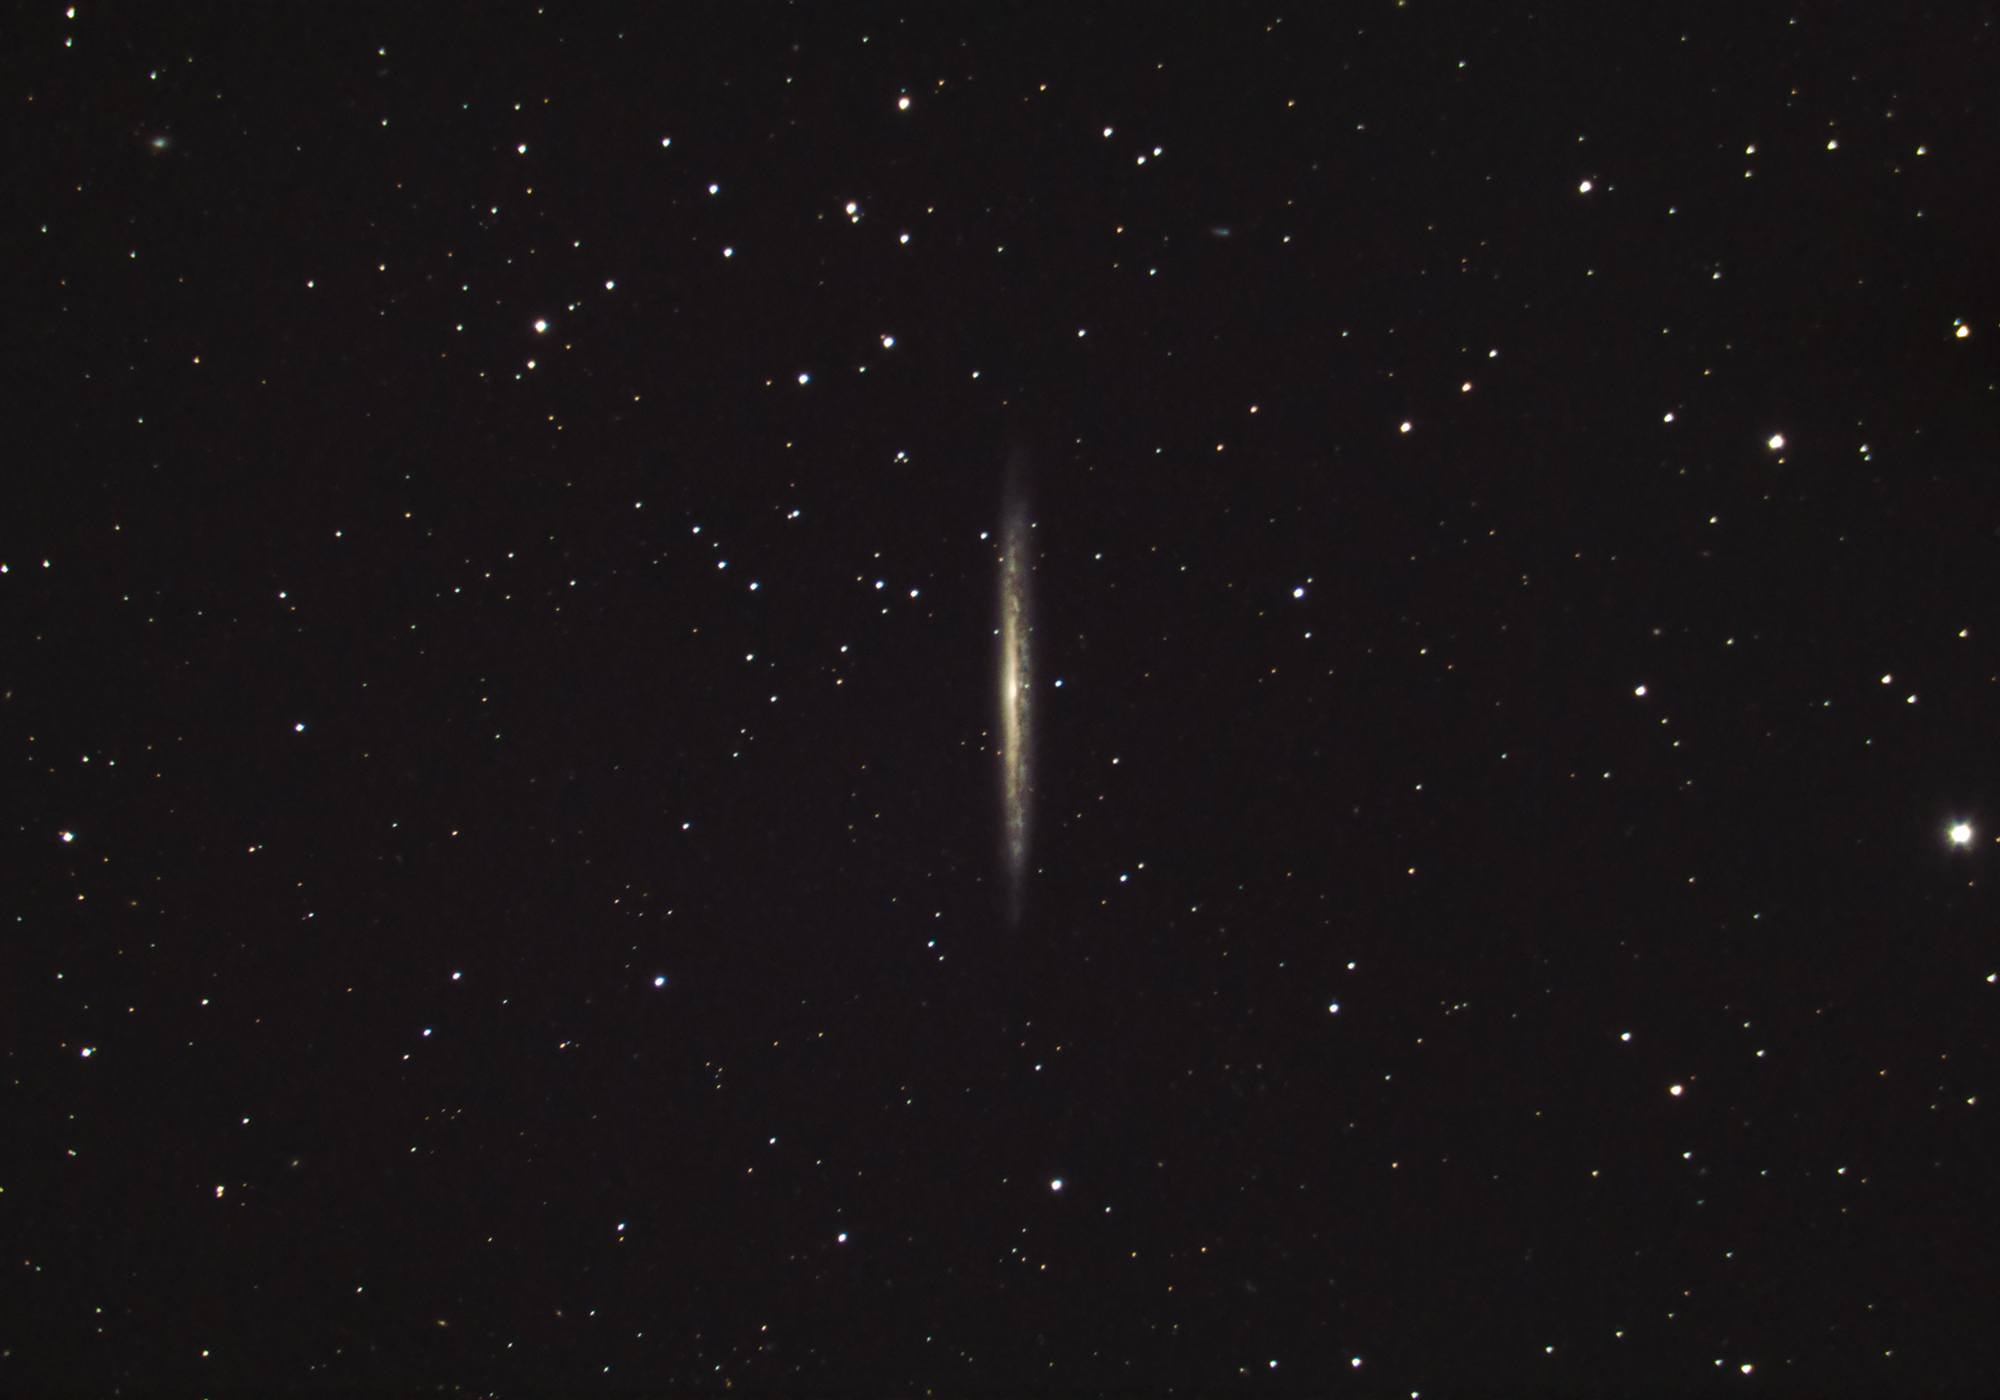 NGC 5907: The Splinter Galaxy